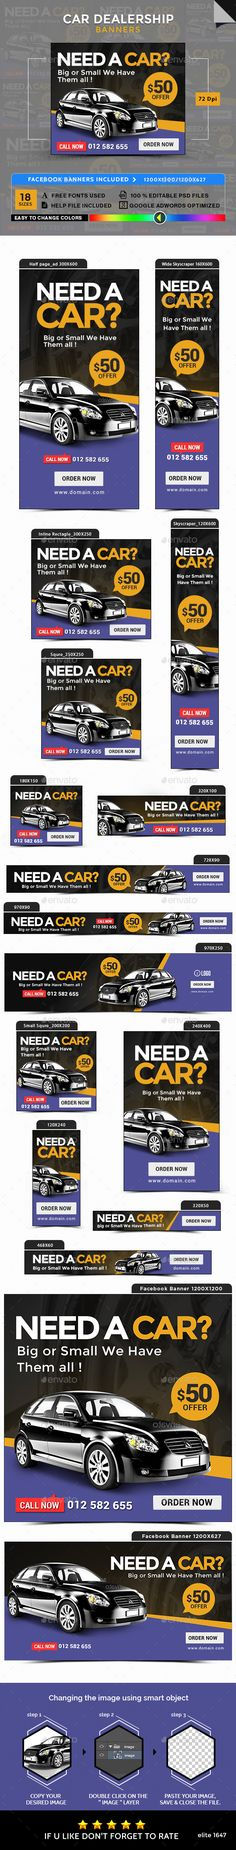 Car Dealership Banners Design Template - Banners & Ads Web Template PSD. Download here: https://graphicriver.net/item/car-dealership-banners/17104657?s_rank=268&ref=yinkira